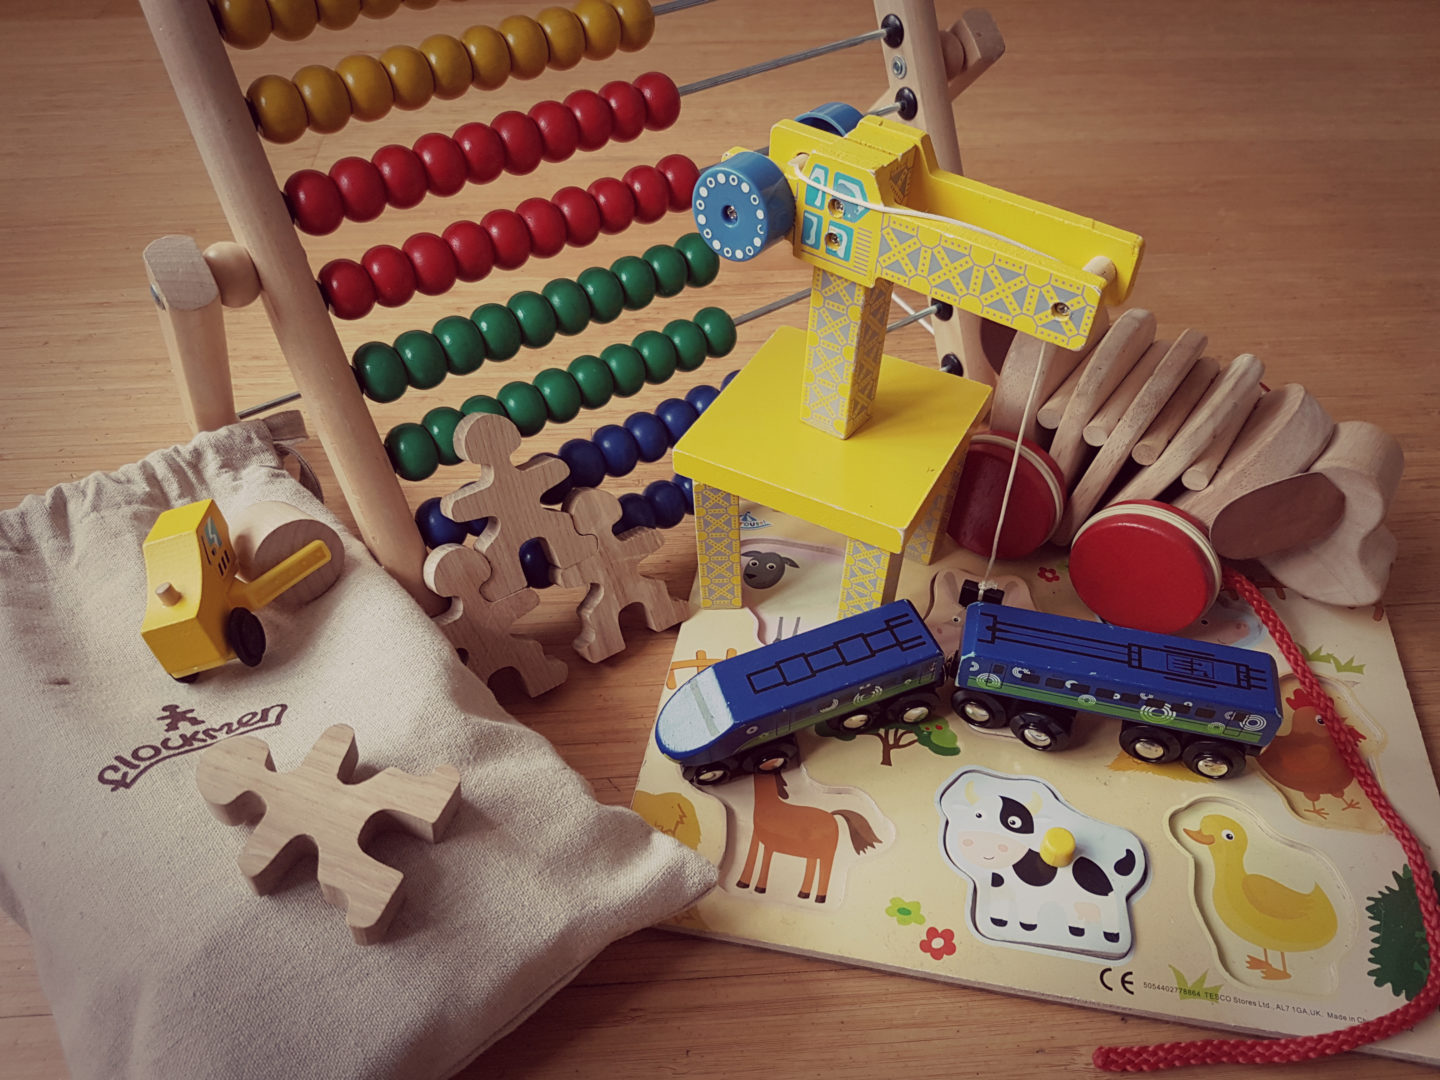 7 reasons you want to buy more wooden toys for your children